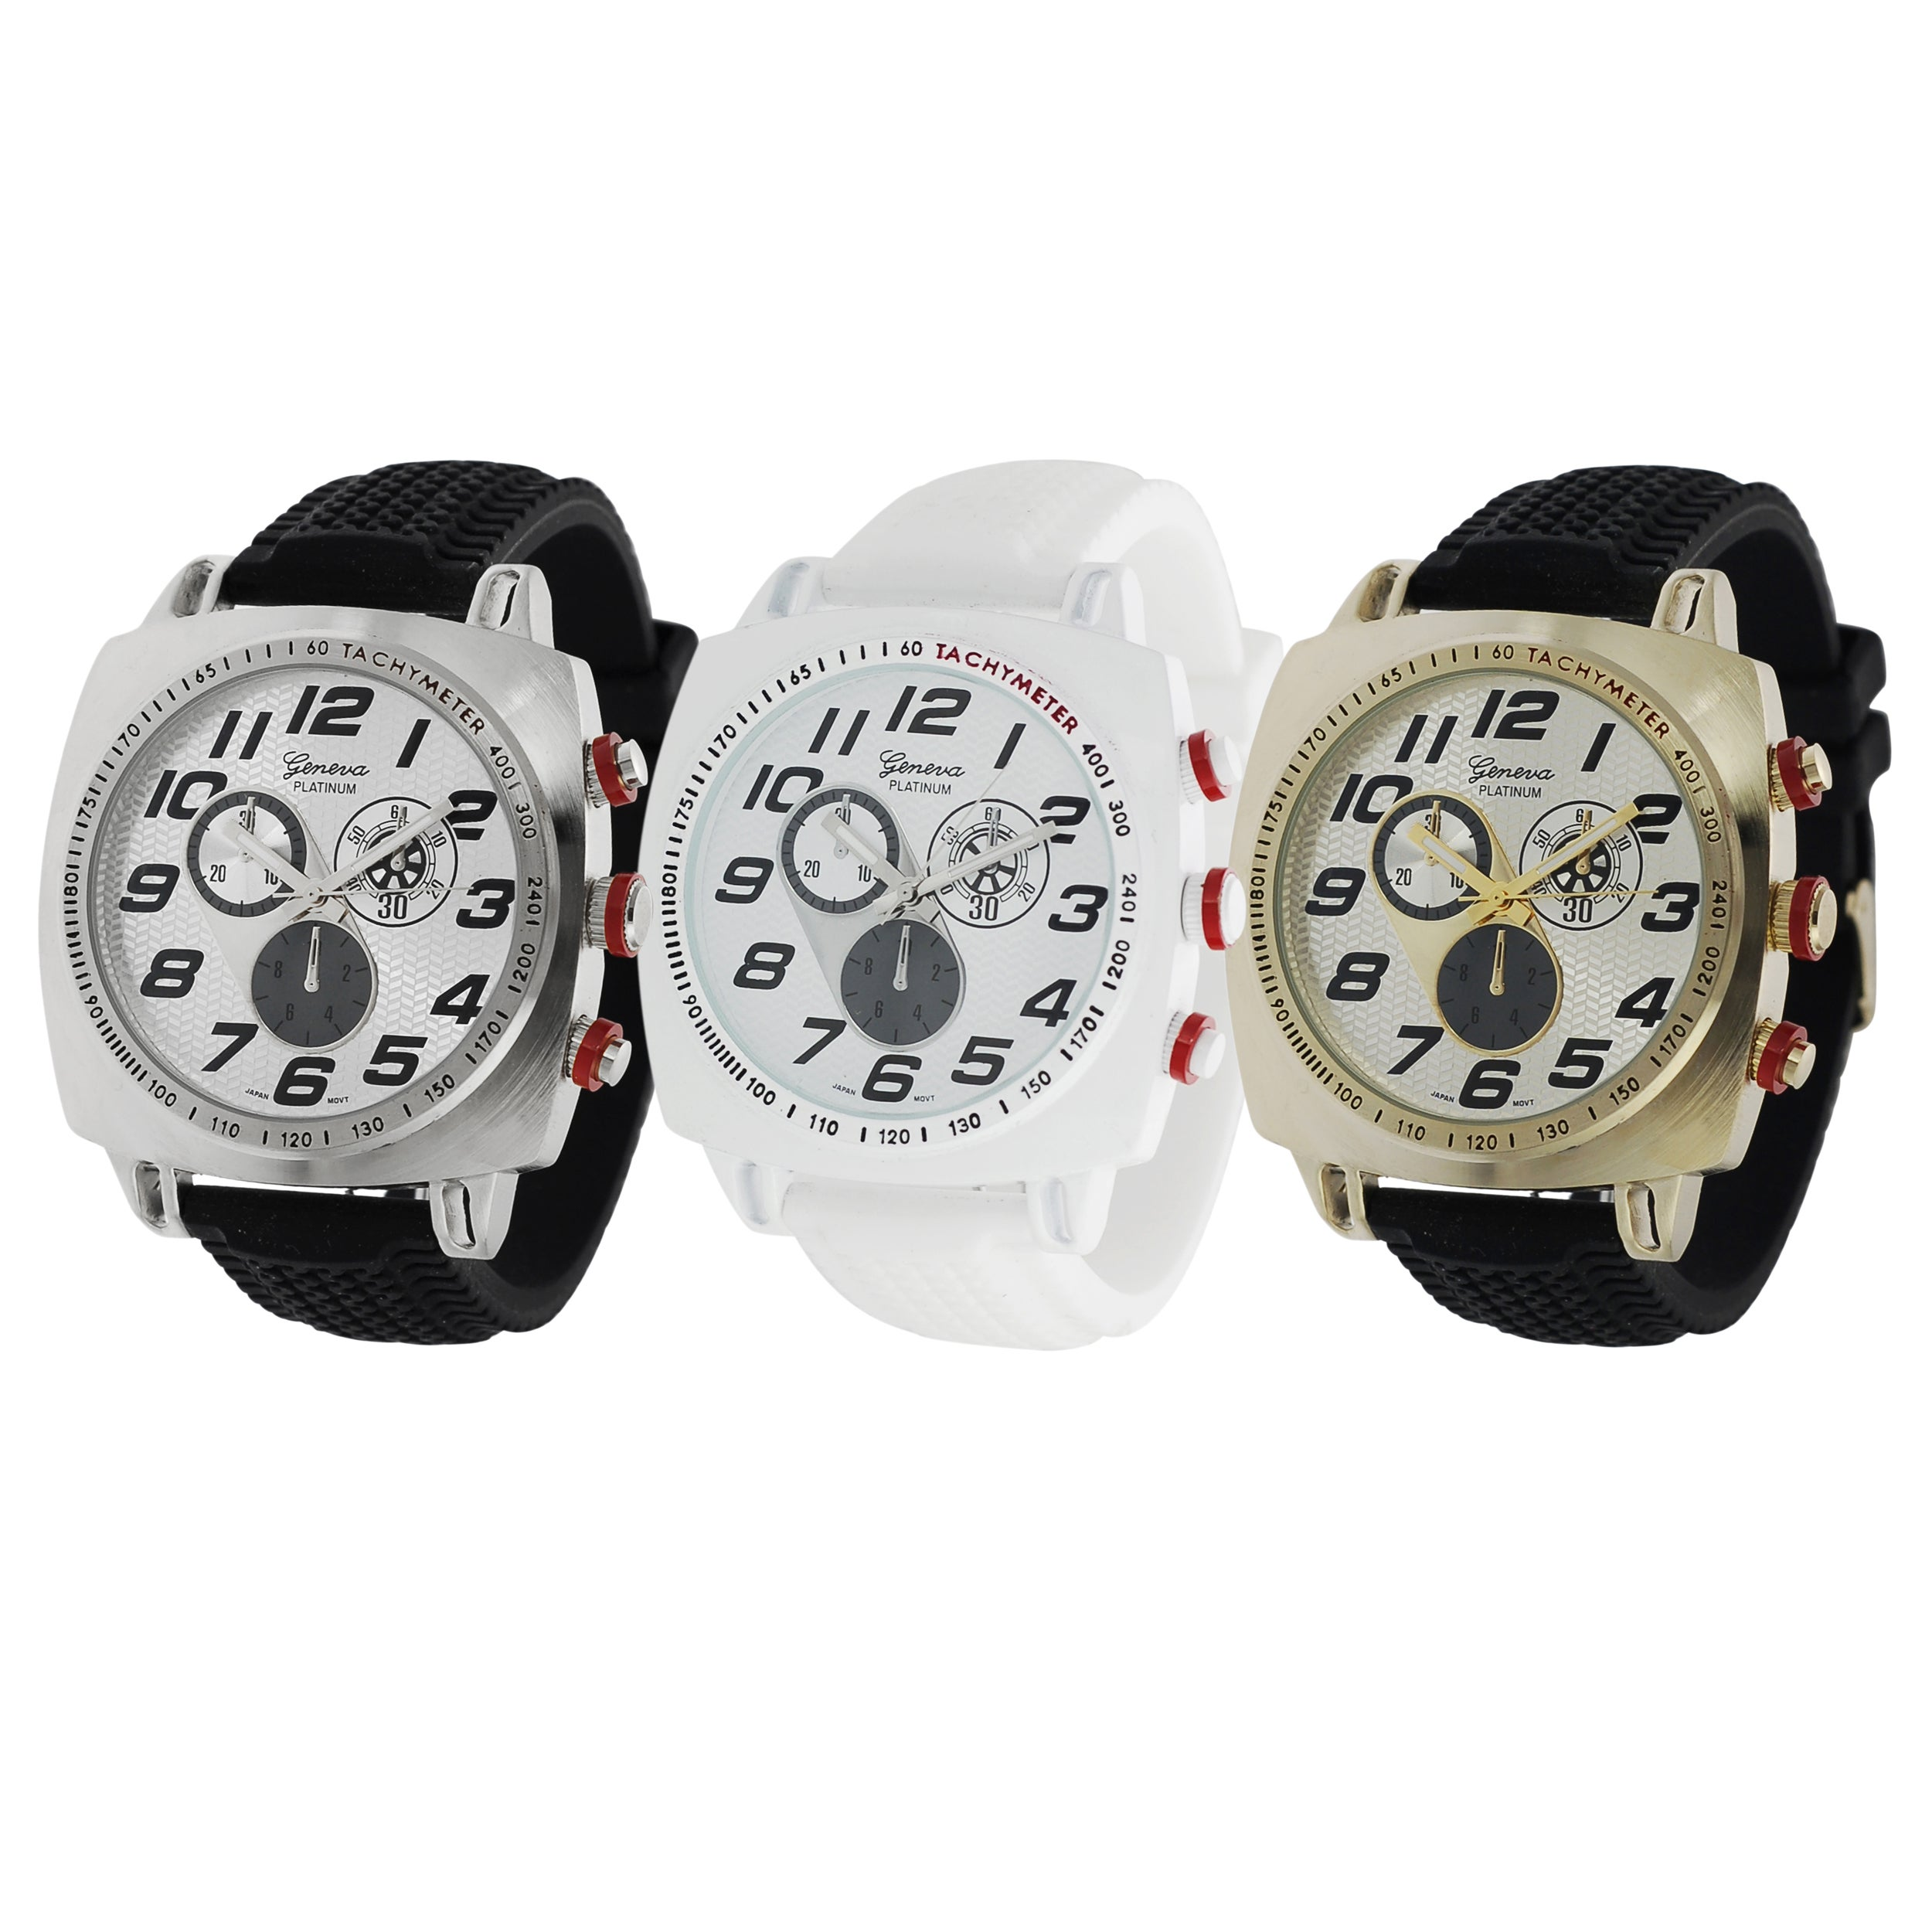 Geneva Platinum Men's Bold Japanese Quartz Chronograph-Style Silicone Watch